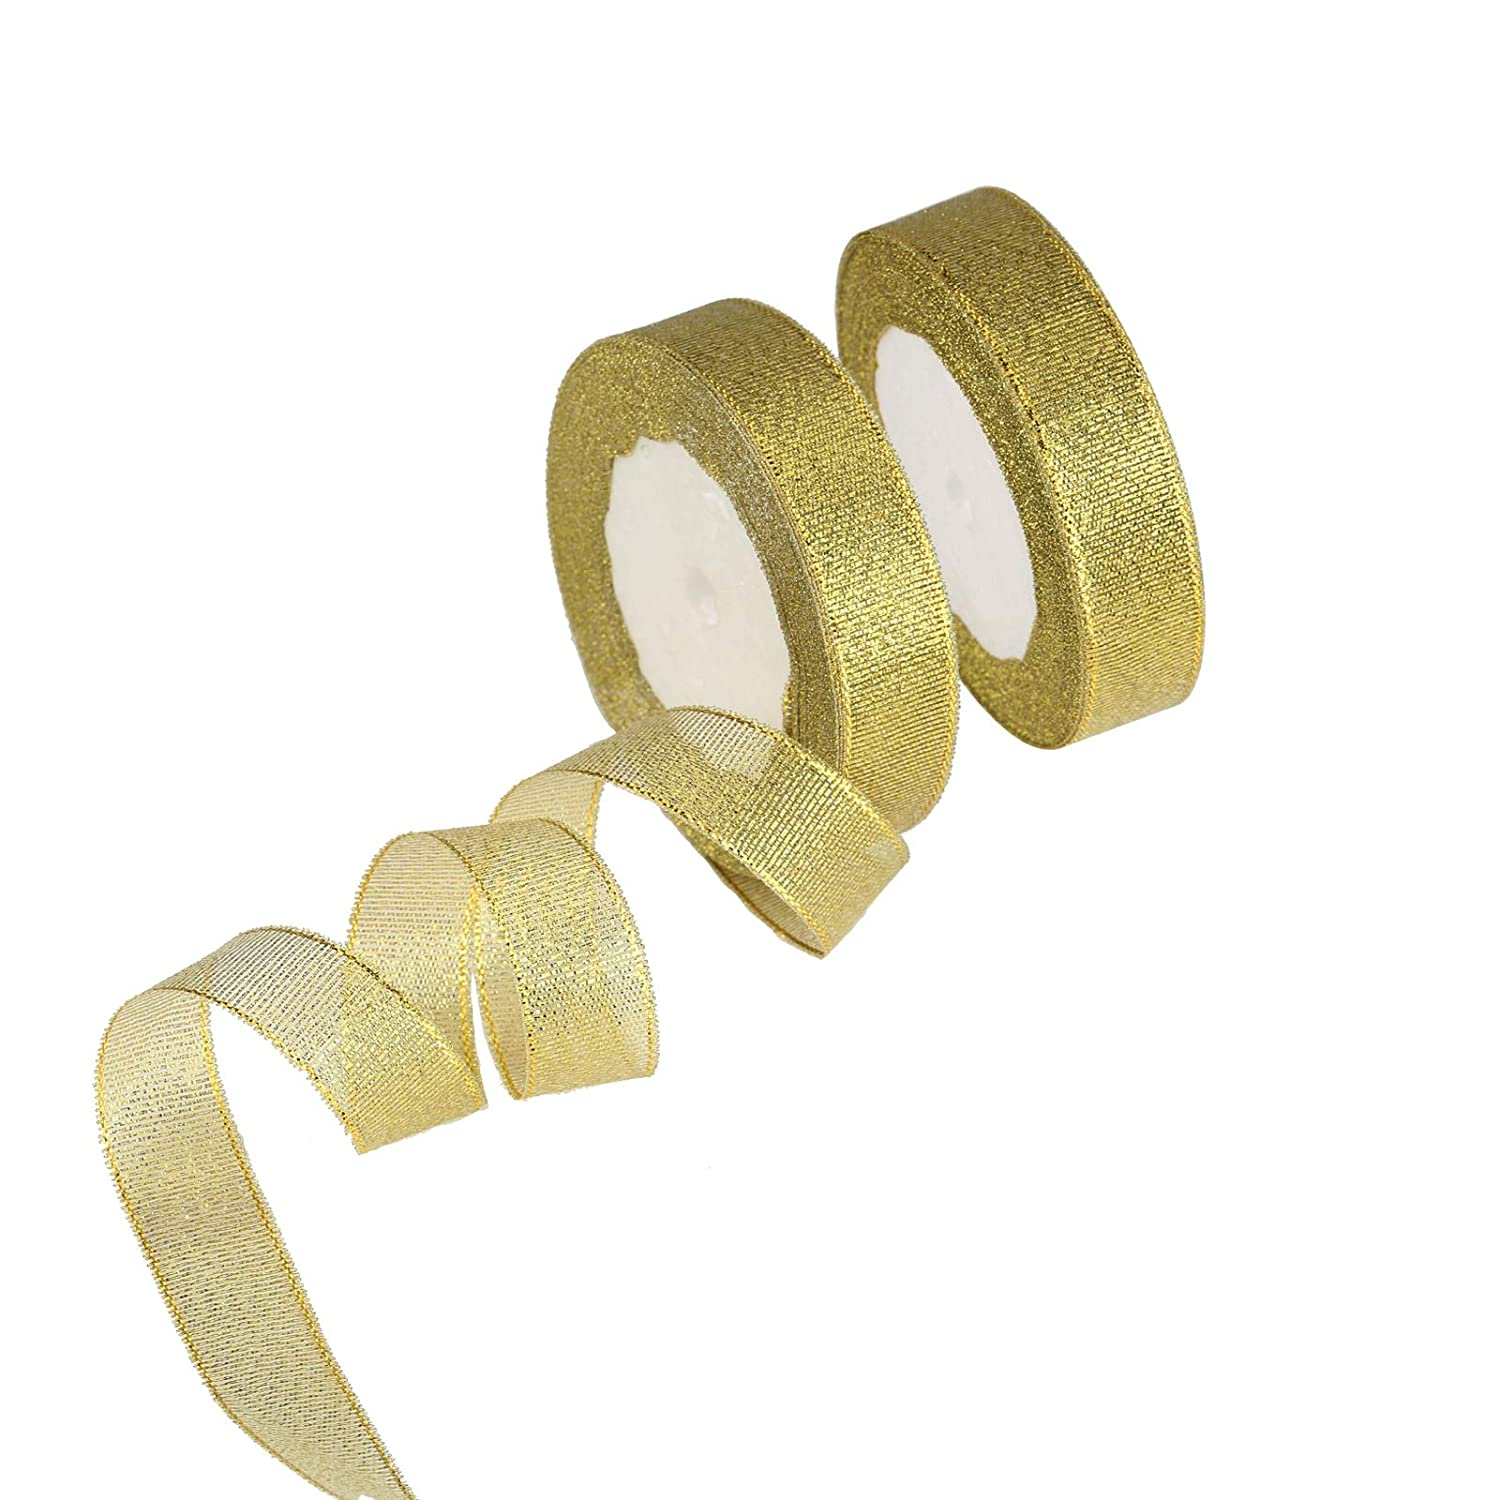 Organza Ribbon, KAKOO 2 Pack 25 Yard 20mm Wide Glitter Trimmings Decorative Ribbons for Gift Wrapping (Gold)